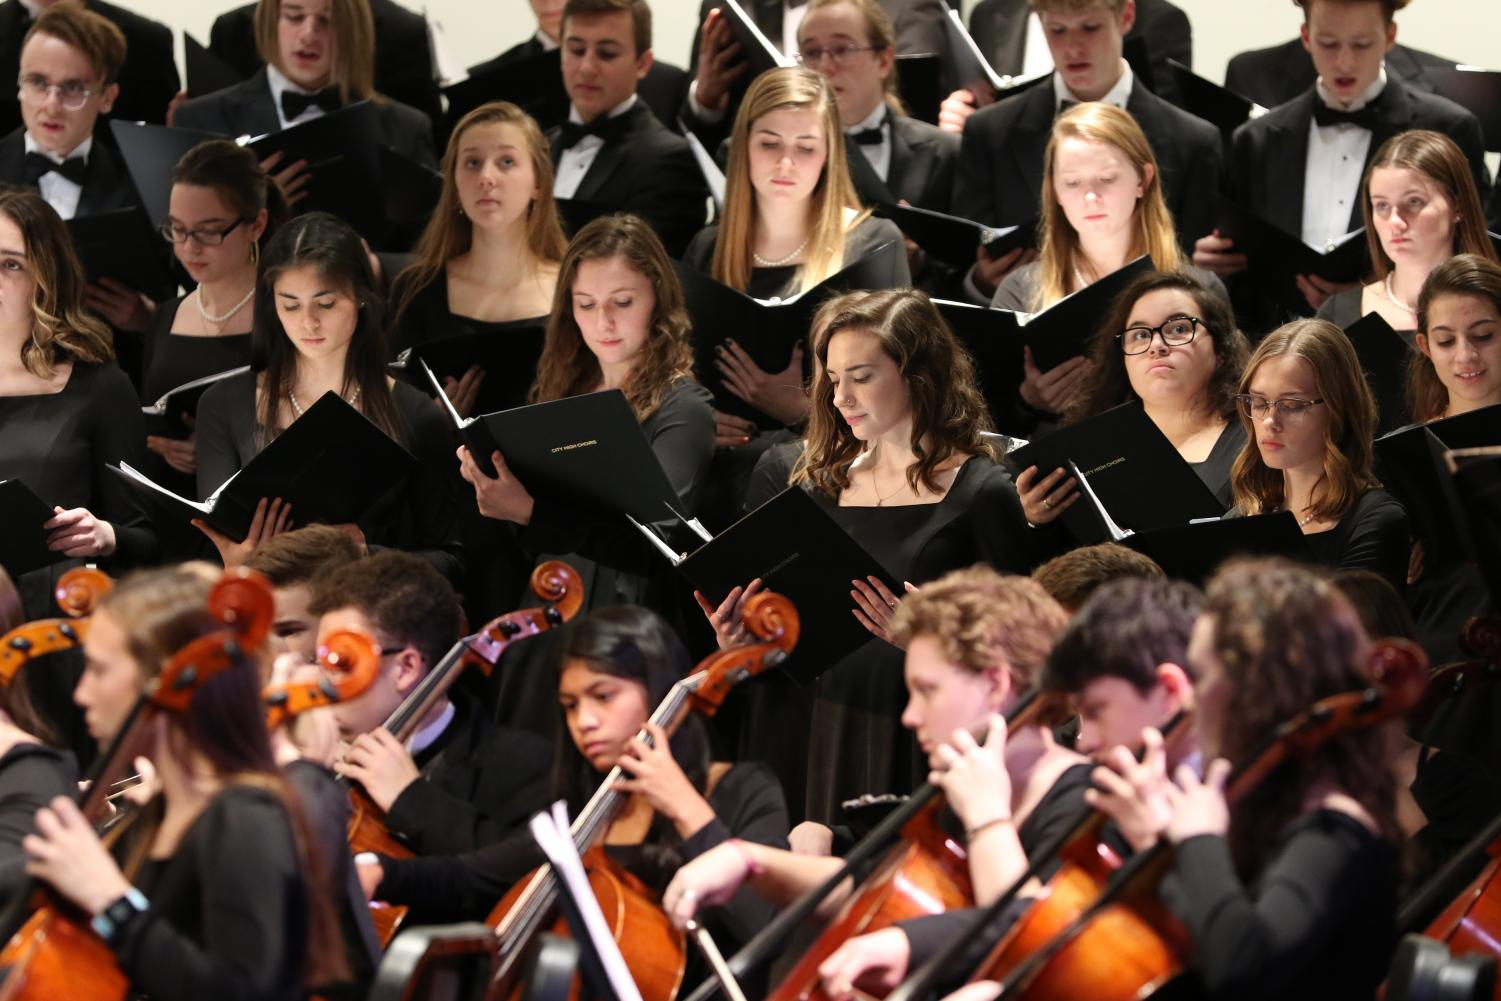 Originally+a+choir+piece%2C+the+orchestra+was+brought+in+to+accompany